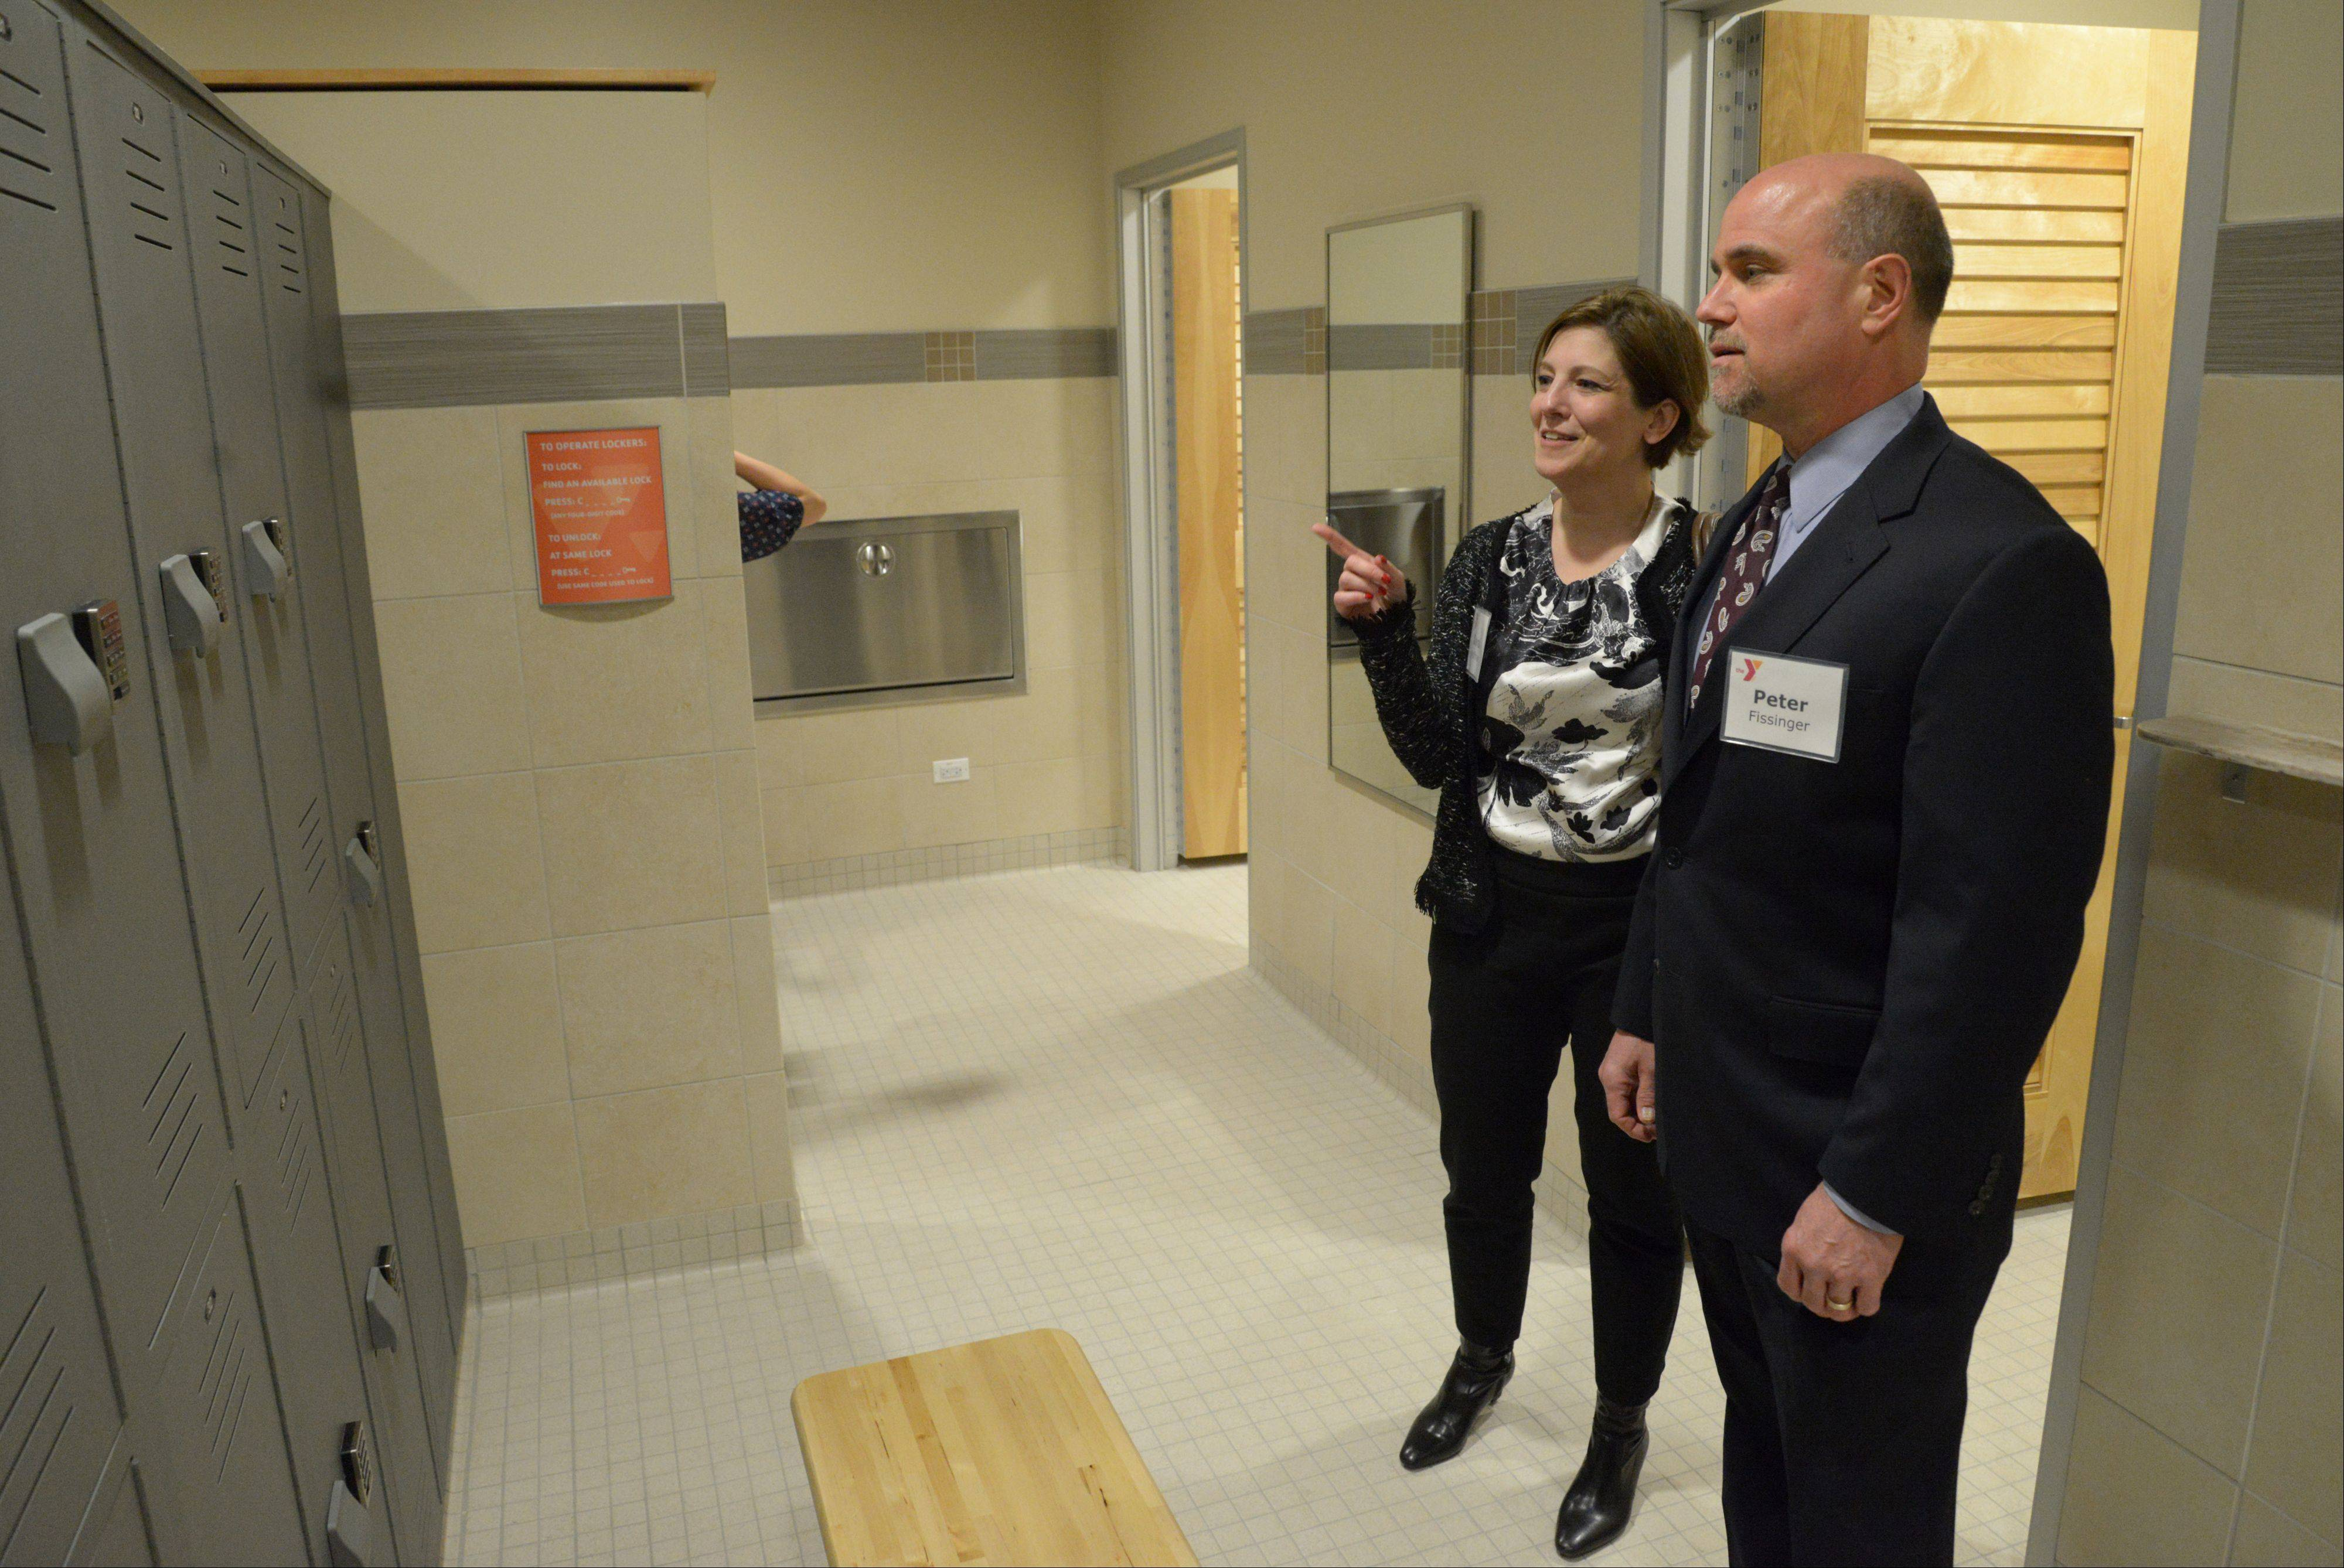 Sarai Hoffman, left, of the YMCA of Metro Chicago, and Peter Fissinger of Chicago look at the new dressing room at the Fry Family YMCA Friday as the Y unveiled its new 5,300-square-foot addition.